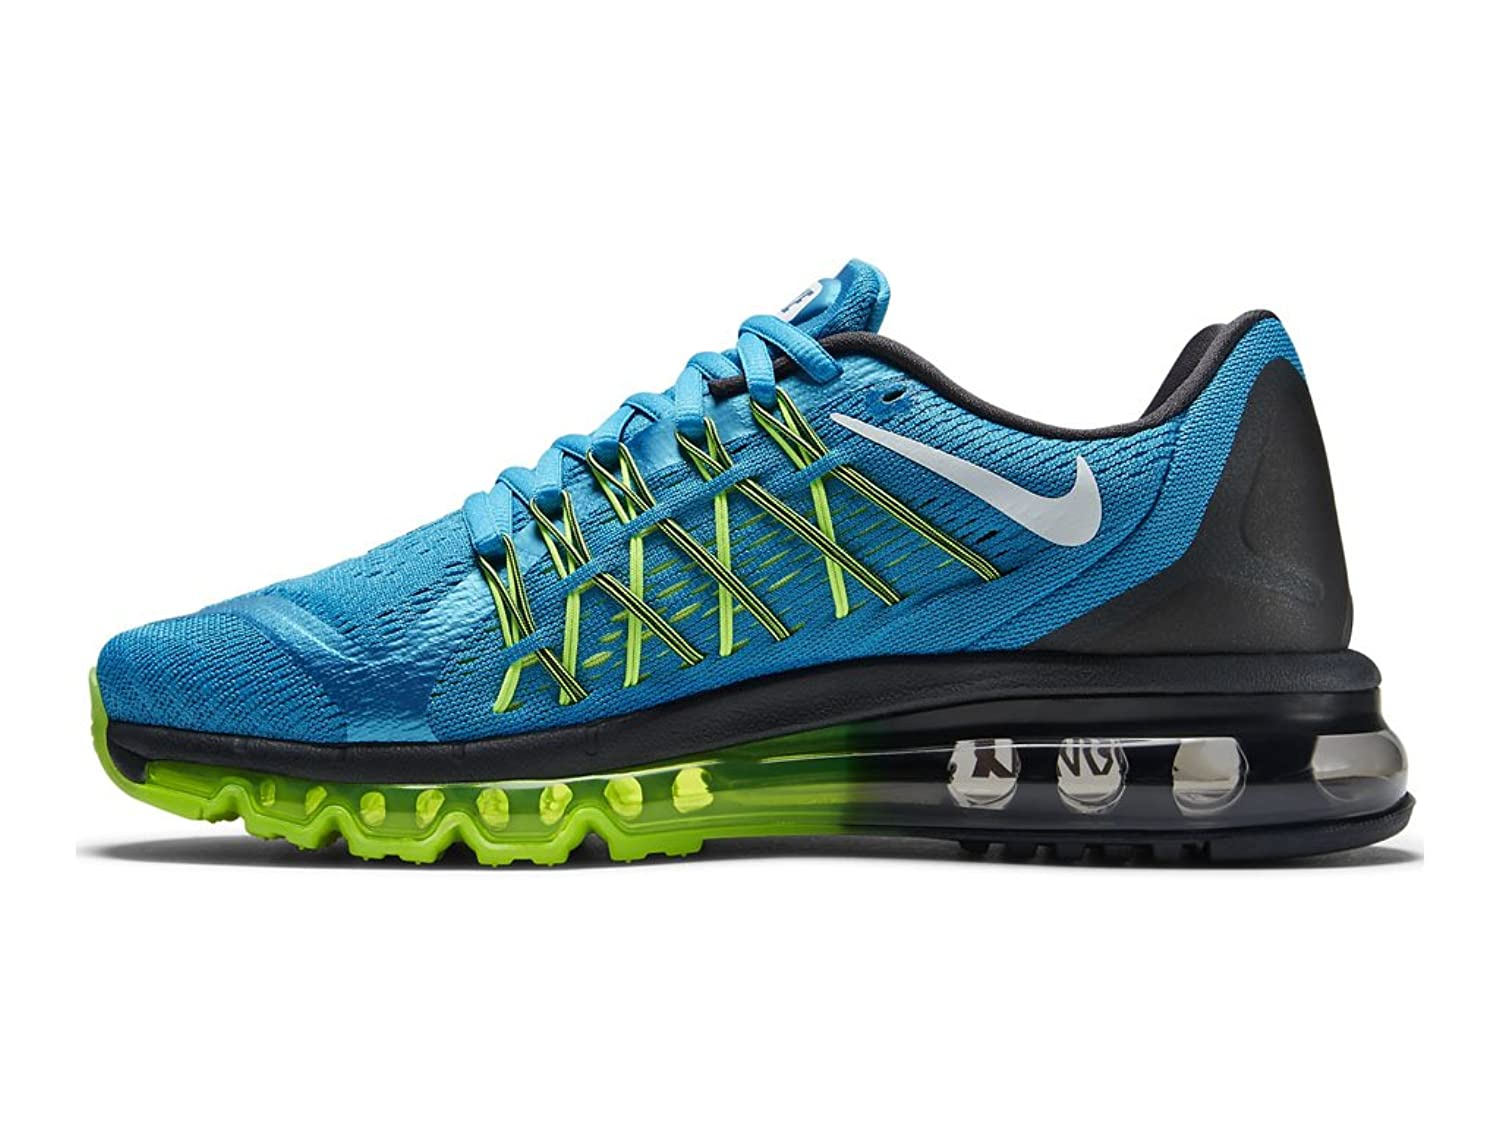 nike womens air max 2015 light blue lacquer volt t